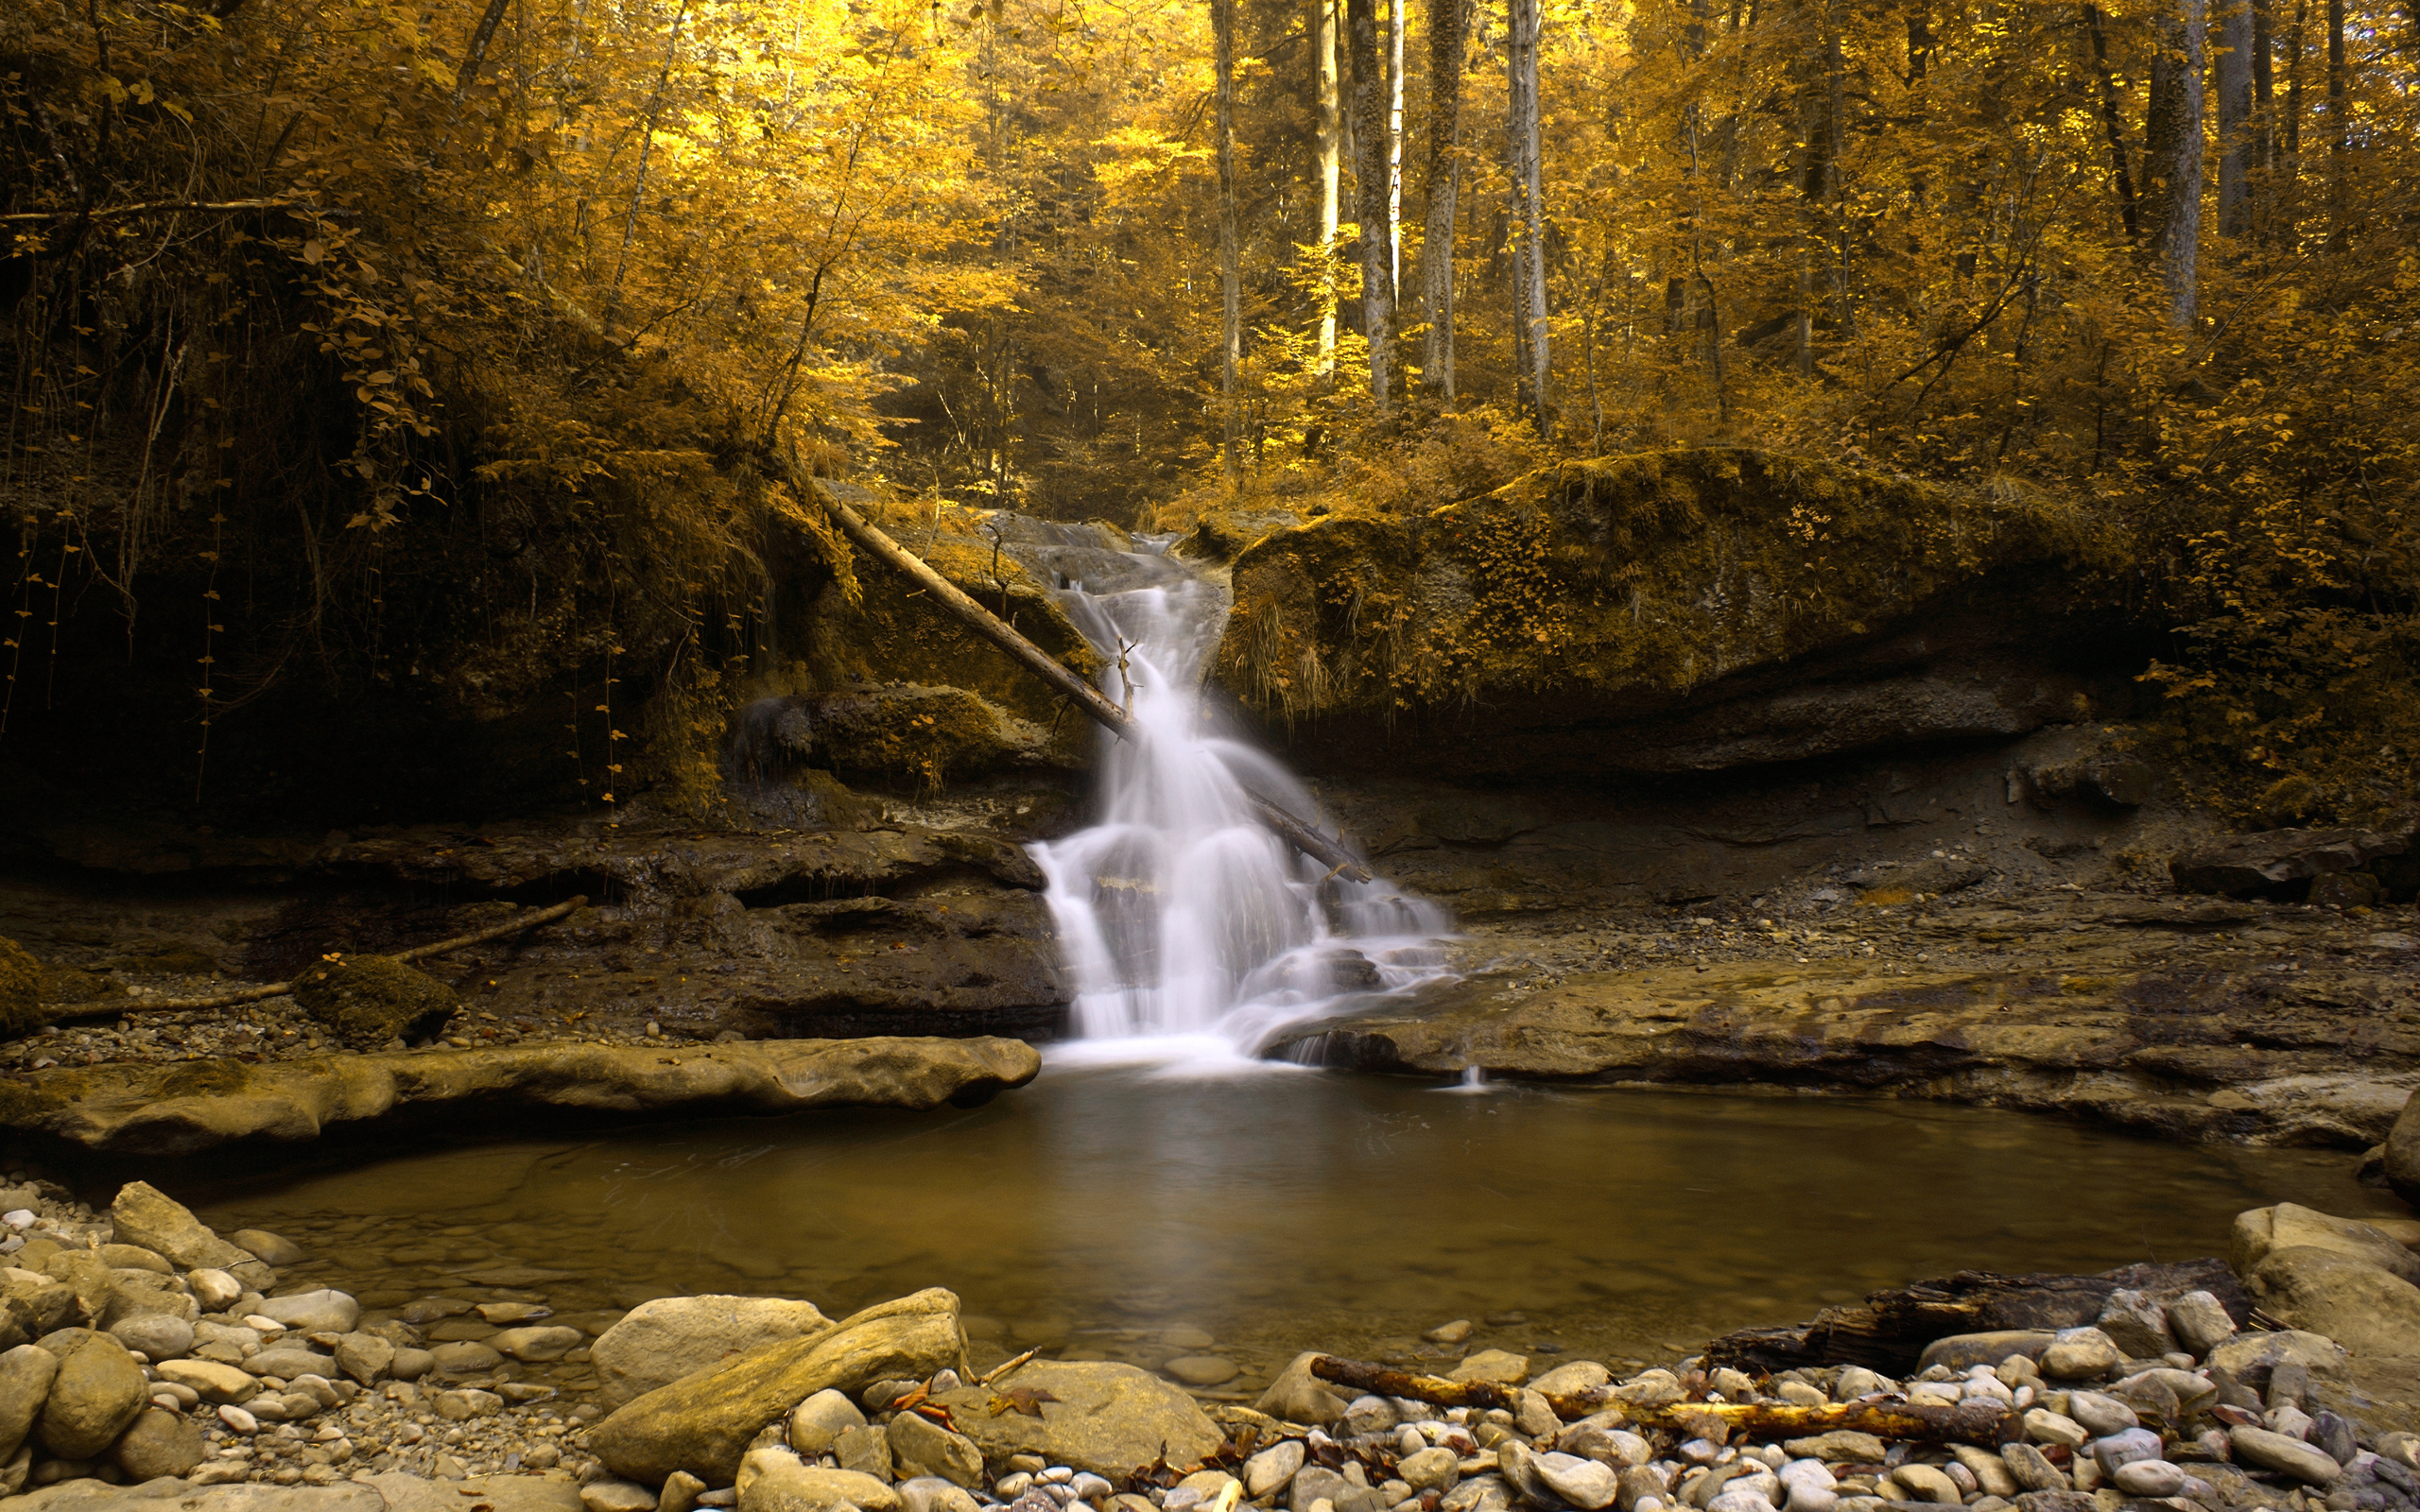 24445 download wallpaper Landscape, Rivers, Trees, Autumn, Waterfalls screensavers and pictures for free